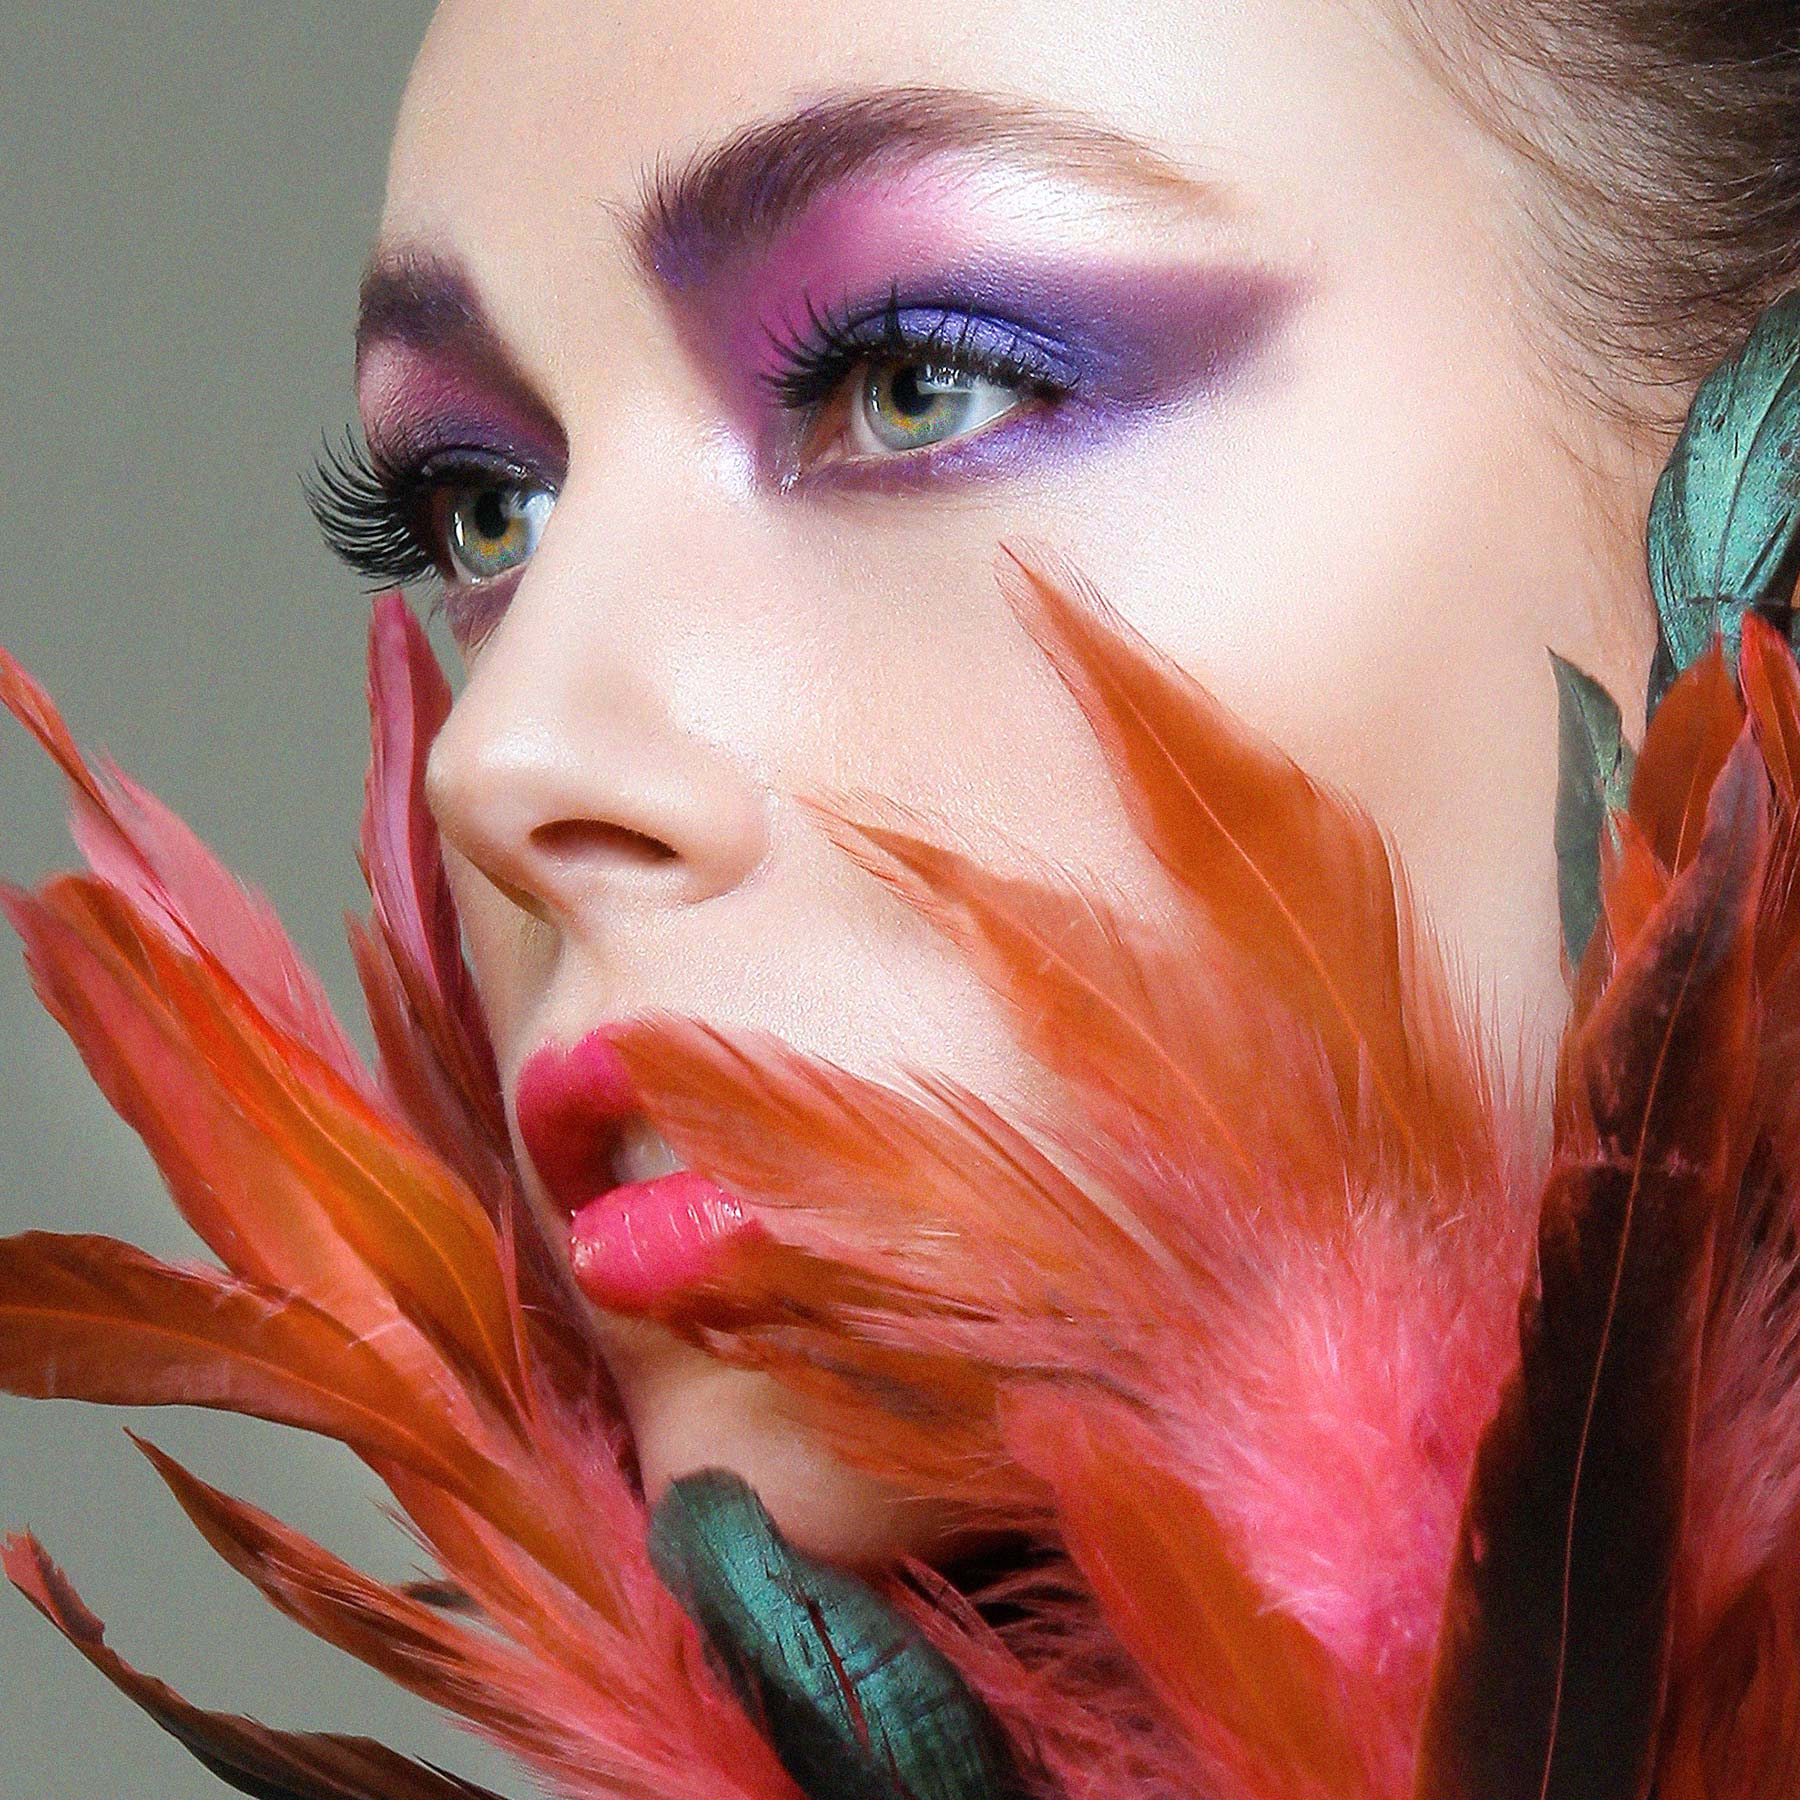 london-toronto-fashion-beauty_feathers-fashion-makeup-photo-shoot-competition-contessa-naha-tazlondon-paula-tizzard